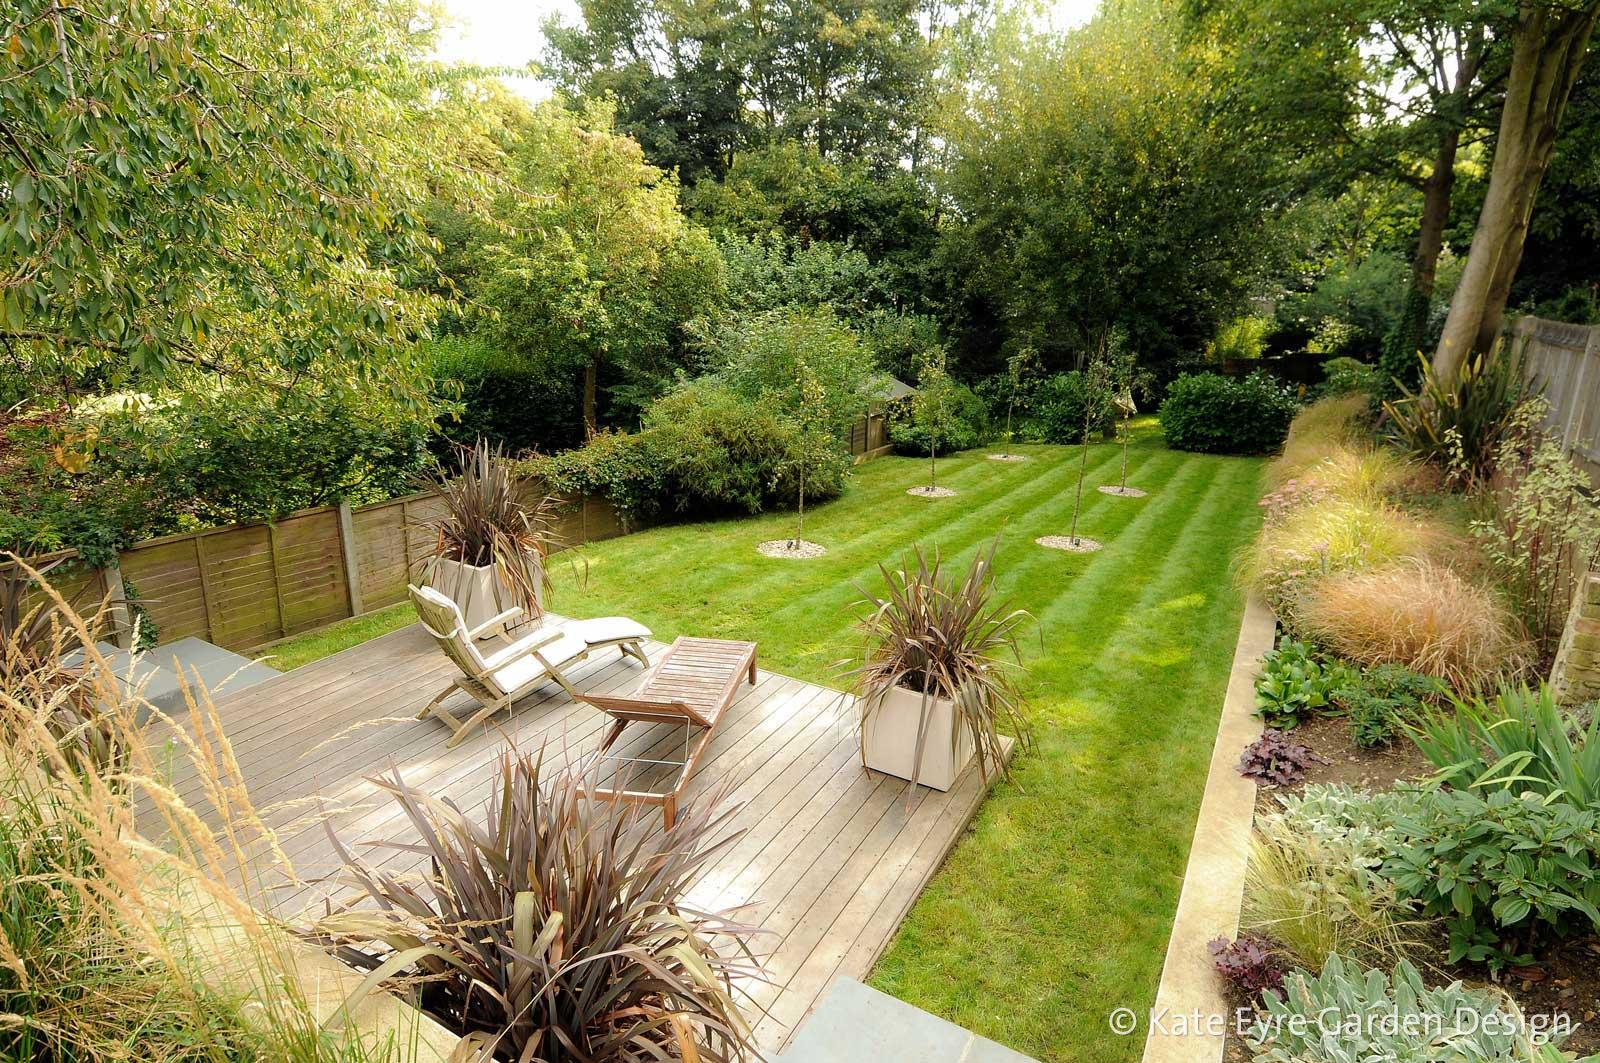 Garden design in crystal palace south east london for Garden design landscaping company